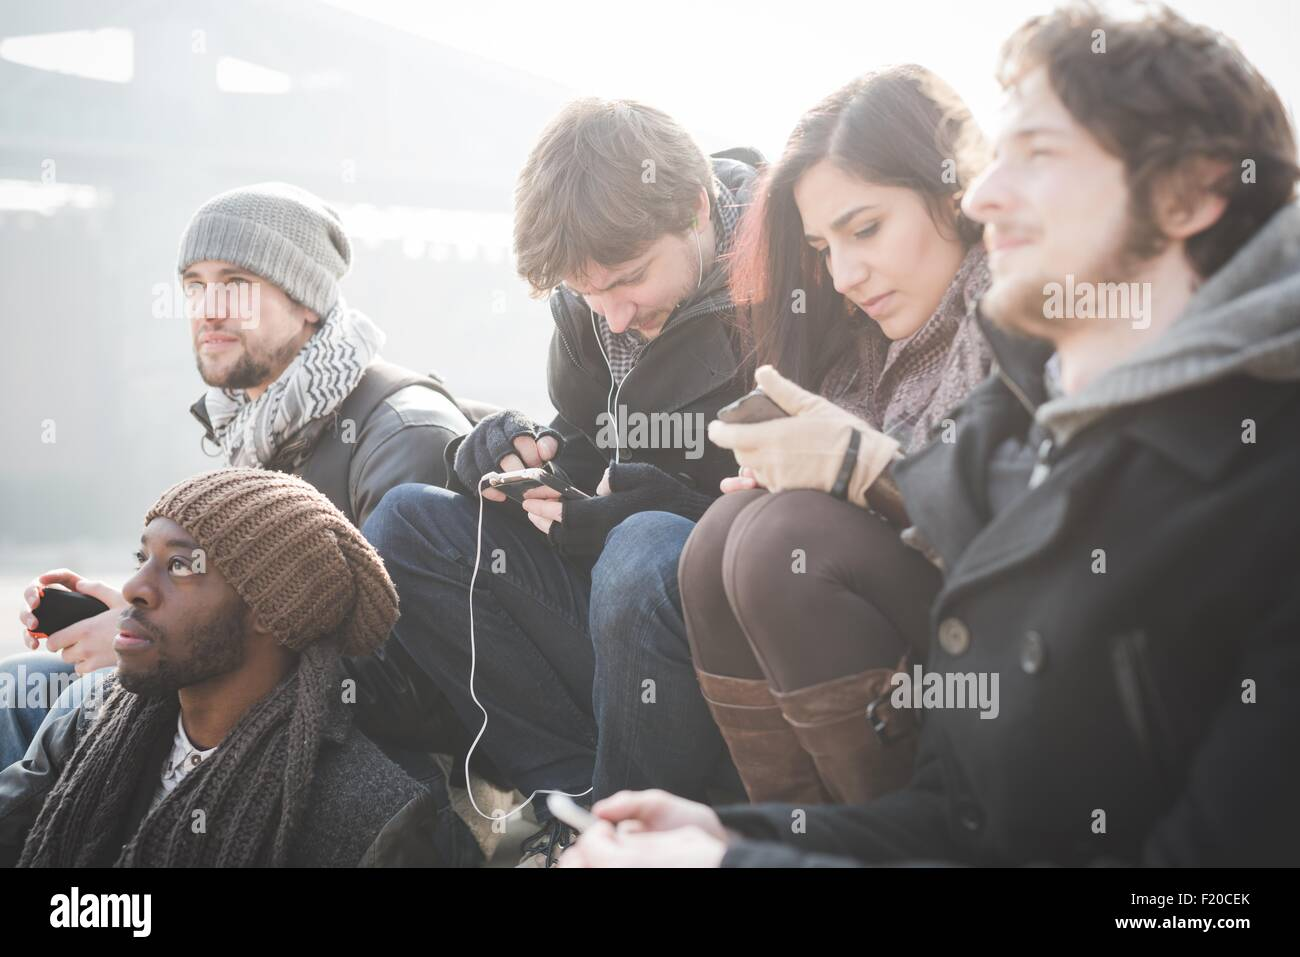 Five young adult friends networking on smartphones - Stock Image